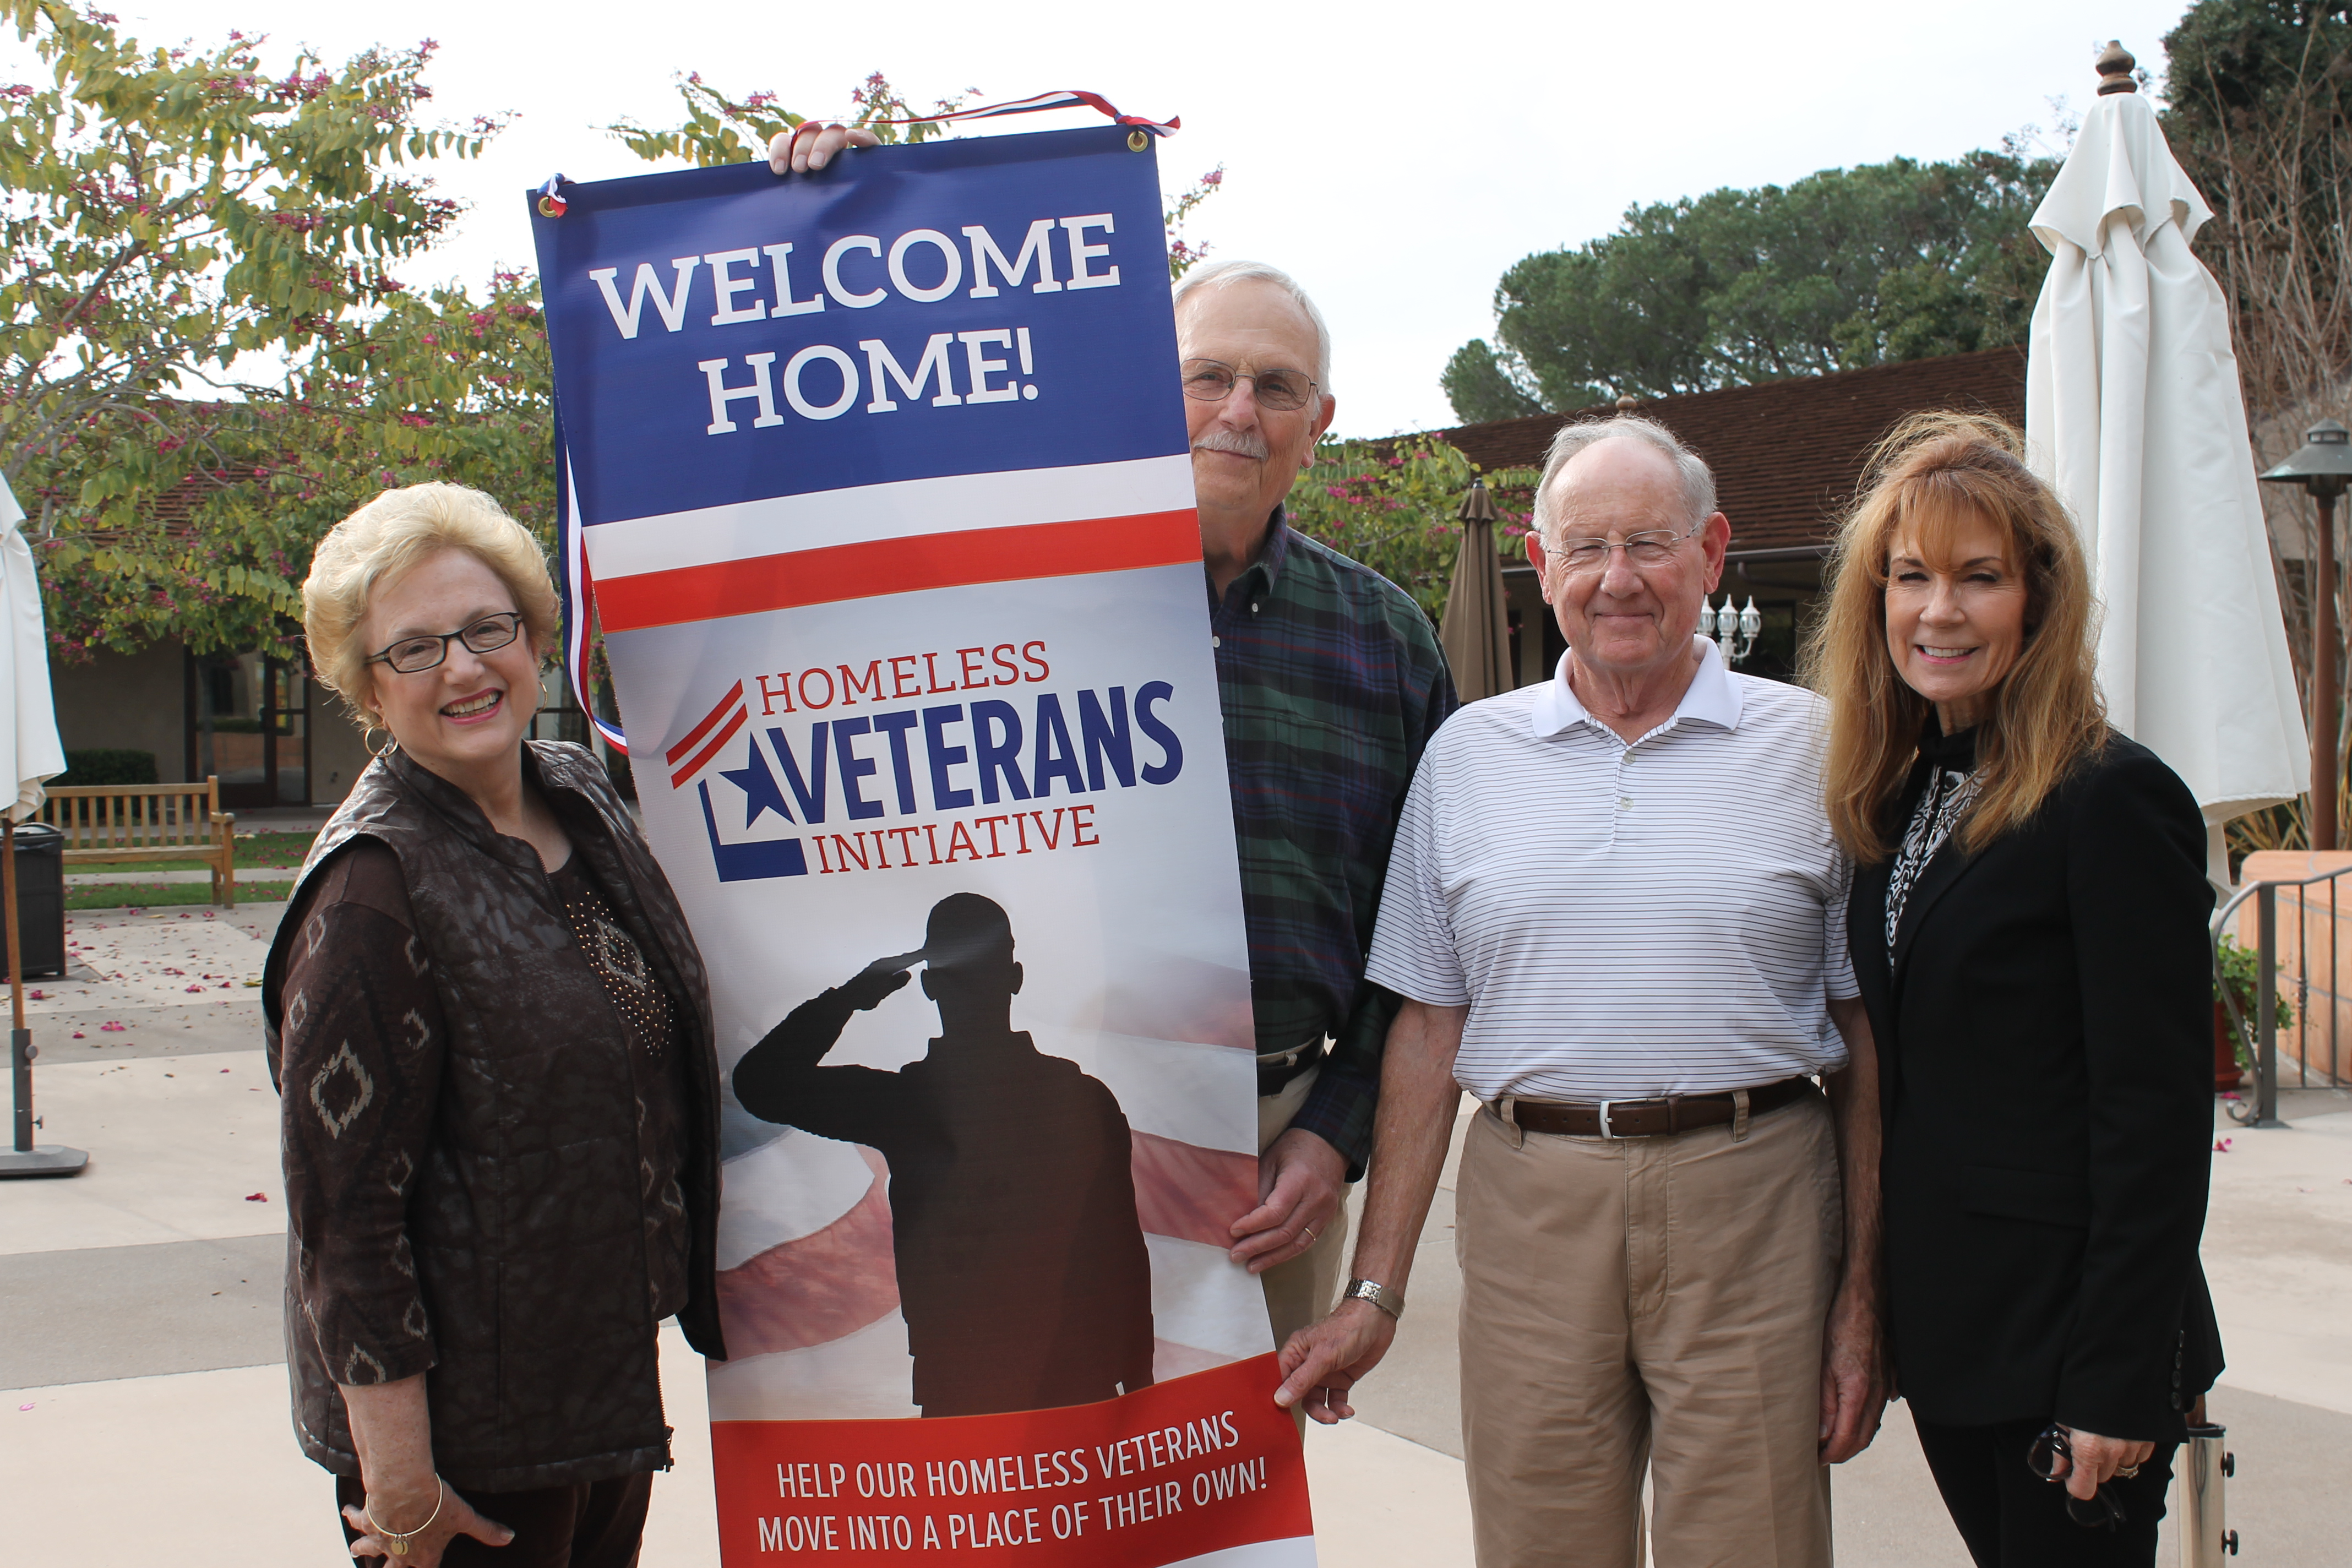 homeless veterans initiative group picture